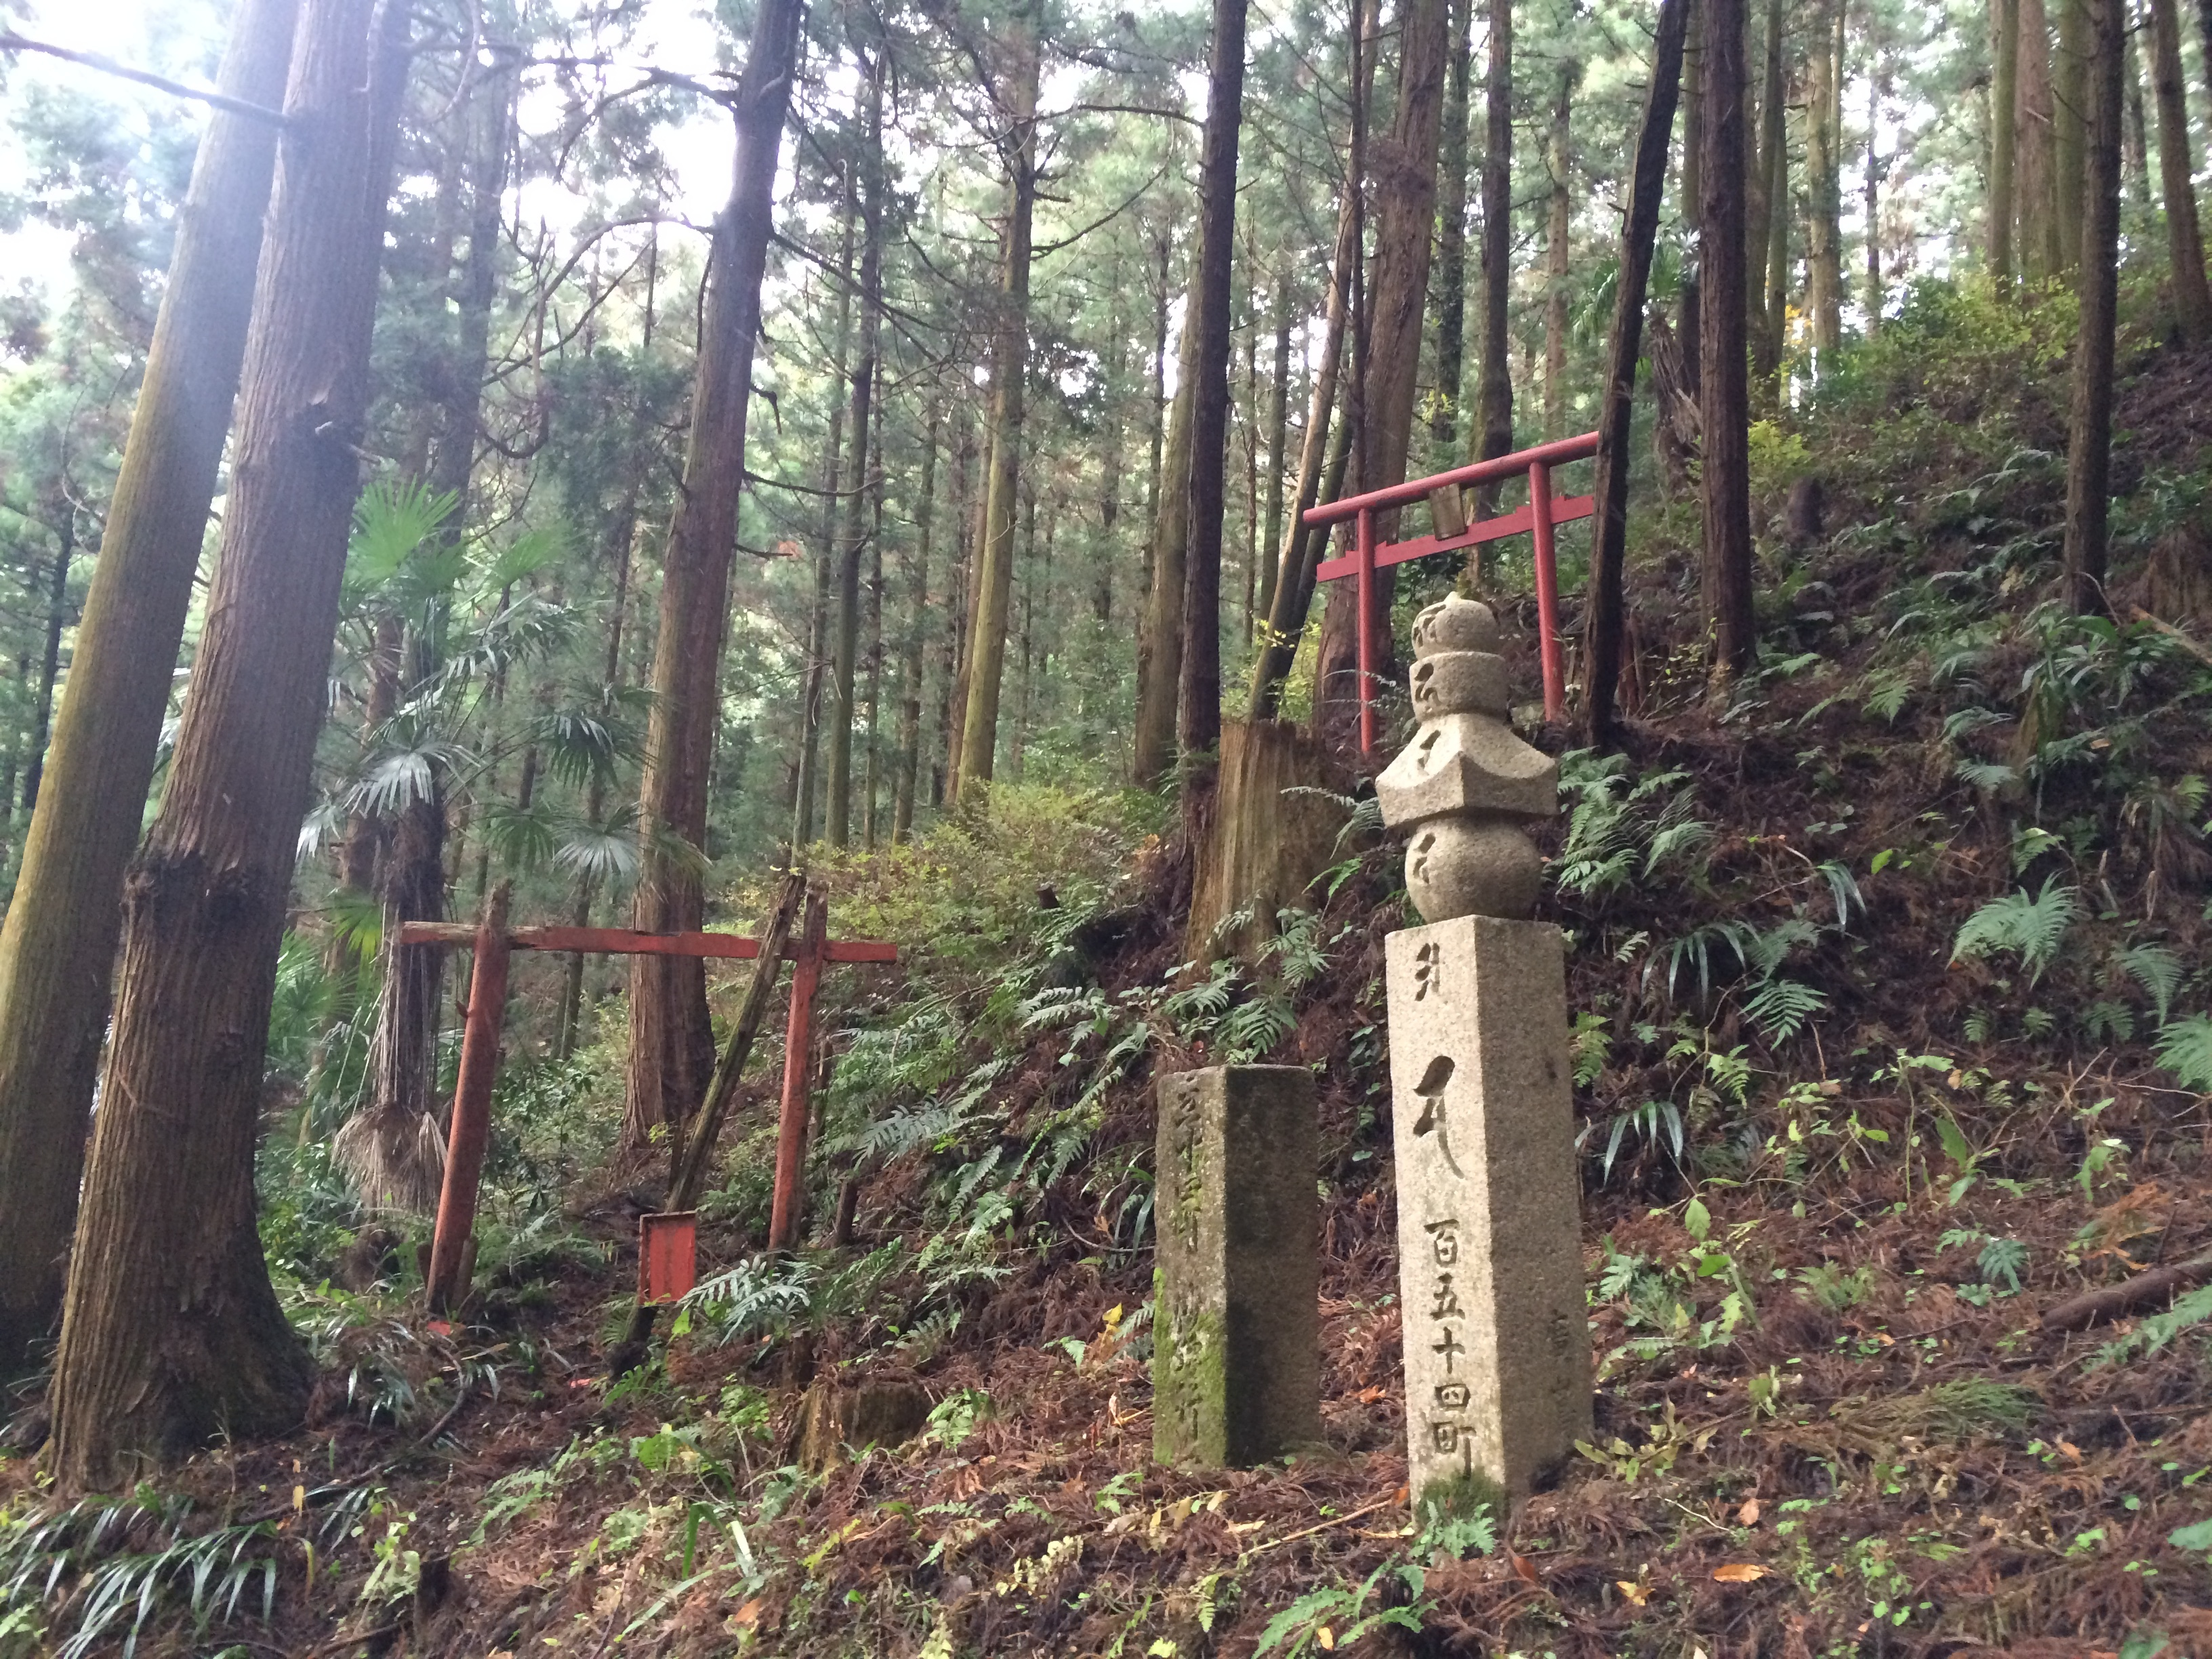 third essay of astrid eighth trainee of gr uuml nwald foundation the first of 180 stone pillars are standing in jison in temple in kudoyama and mark the starting point of the trek in the edo period a choishi was set up